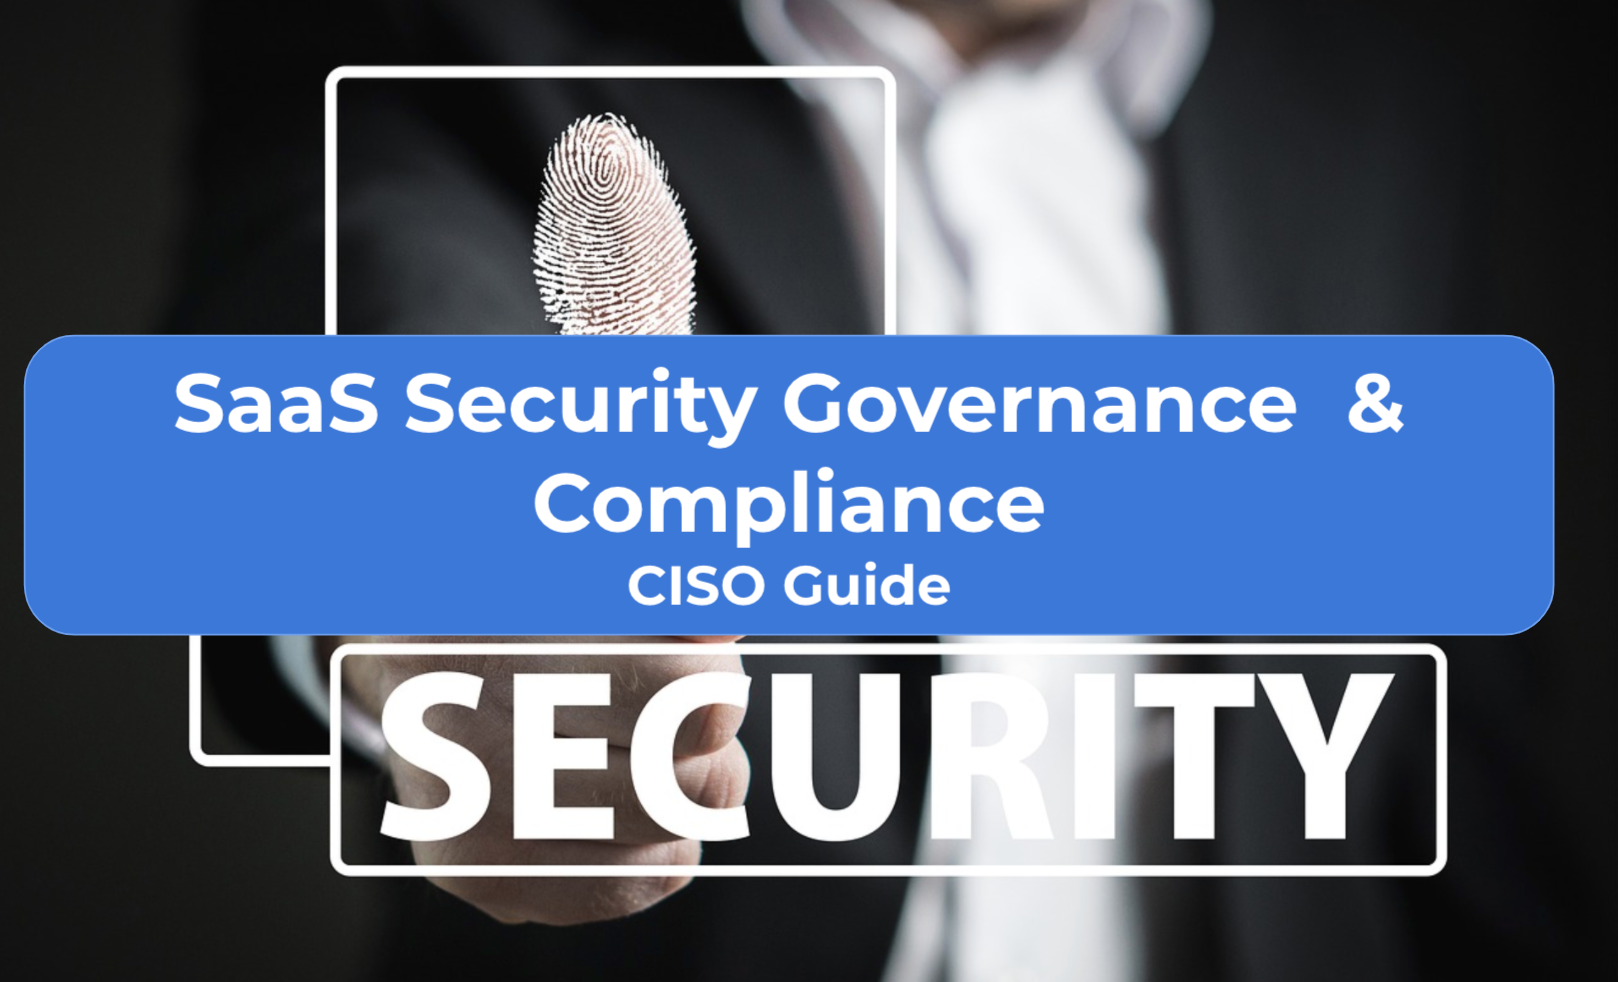 SaaS Security Governance & Compliance CISO Guide